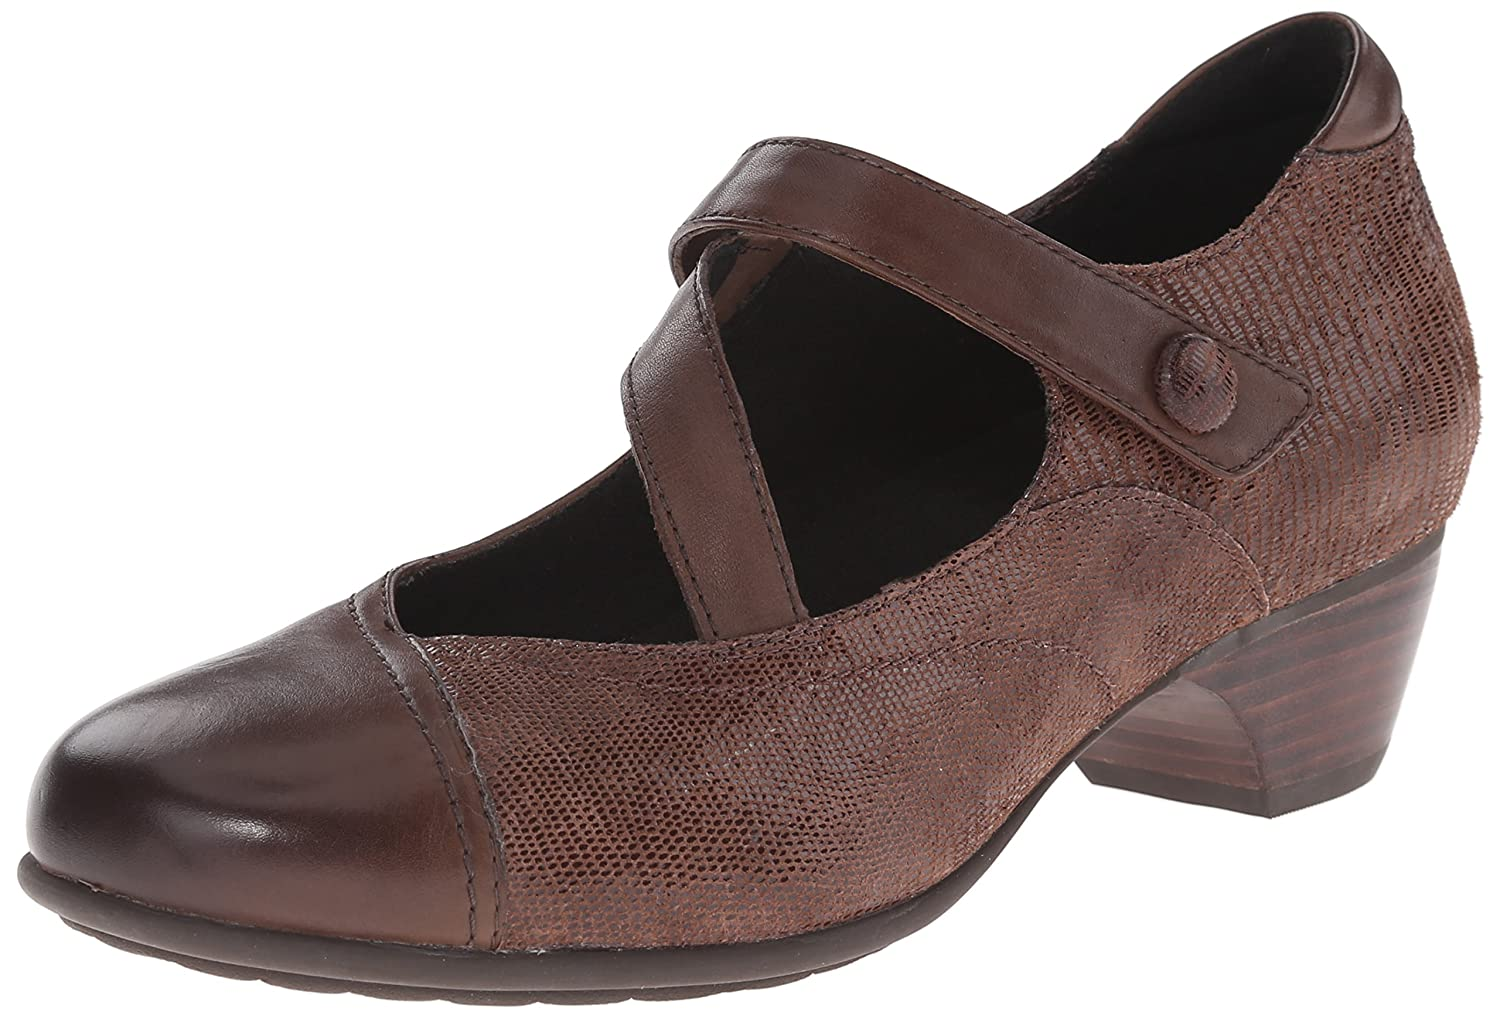 Aravon Women's Portia - AR Dress Pump B00UU3SYF0 9.5 2A US|Brown/Multi